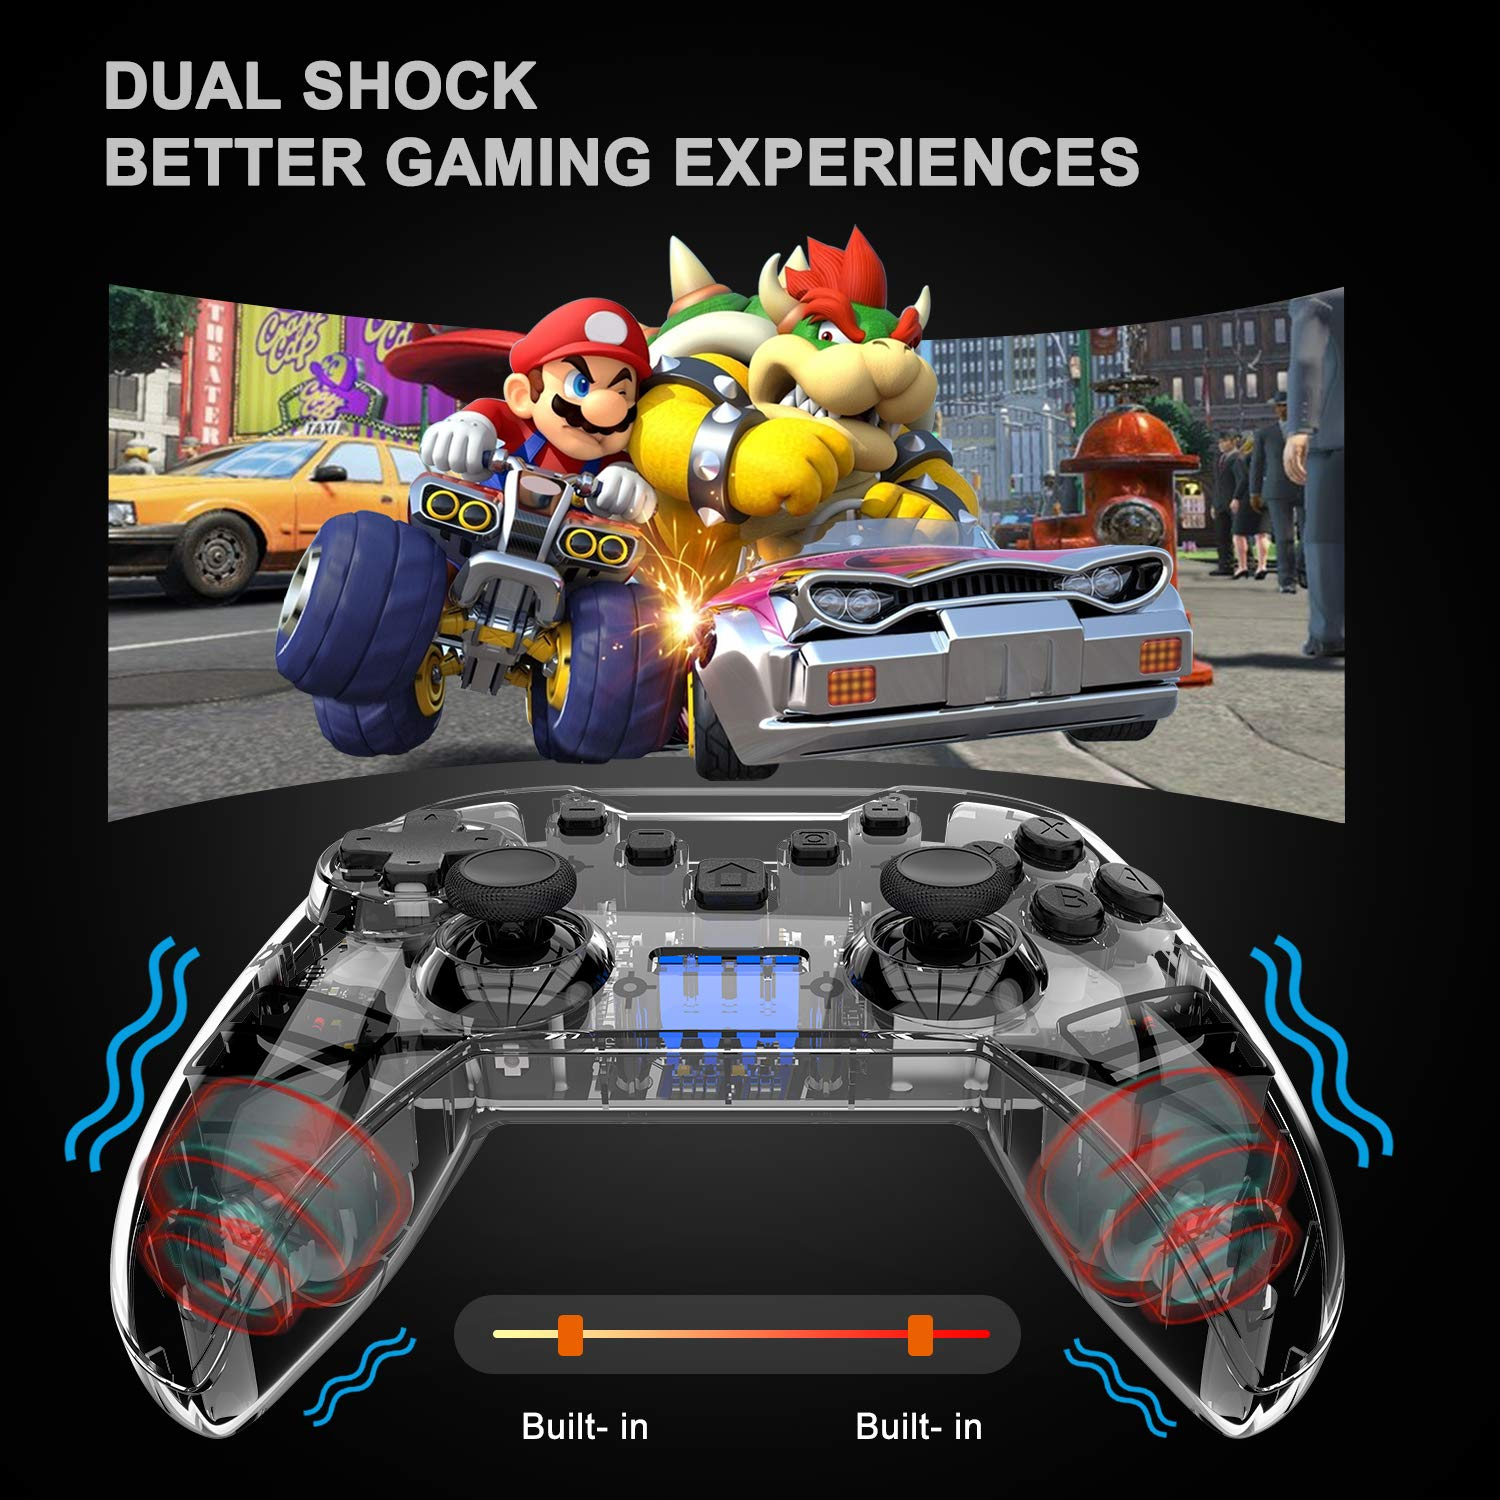 N-intendo Switch Pro Controller - Wireless Controller Remote with Dual Shock, Gyro Axis, Pro Switch Controller Gamepad Compatible with Bluetooth for N-intendo Switch Console (Clear)